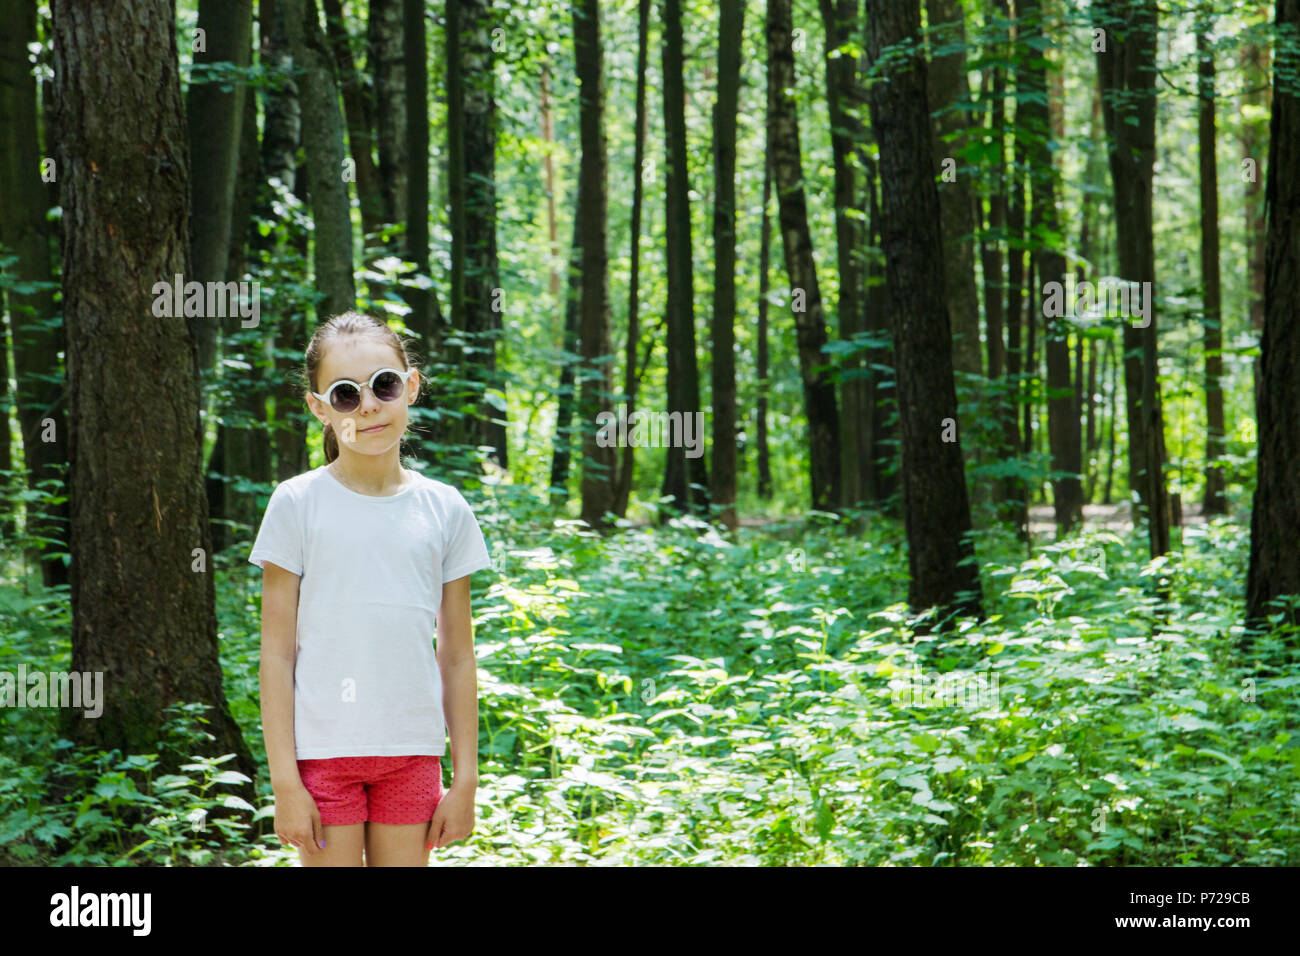 Girl in summer forest, nature background - Stock Image